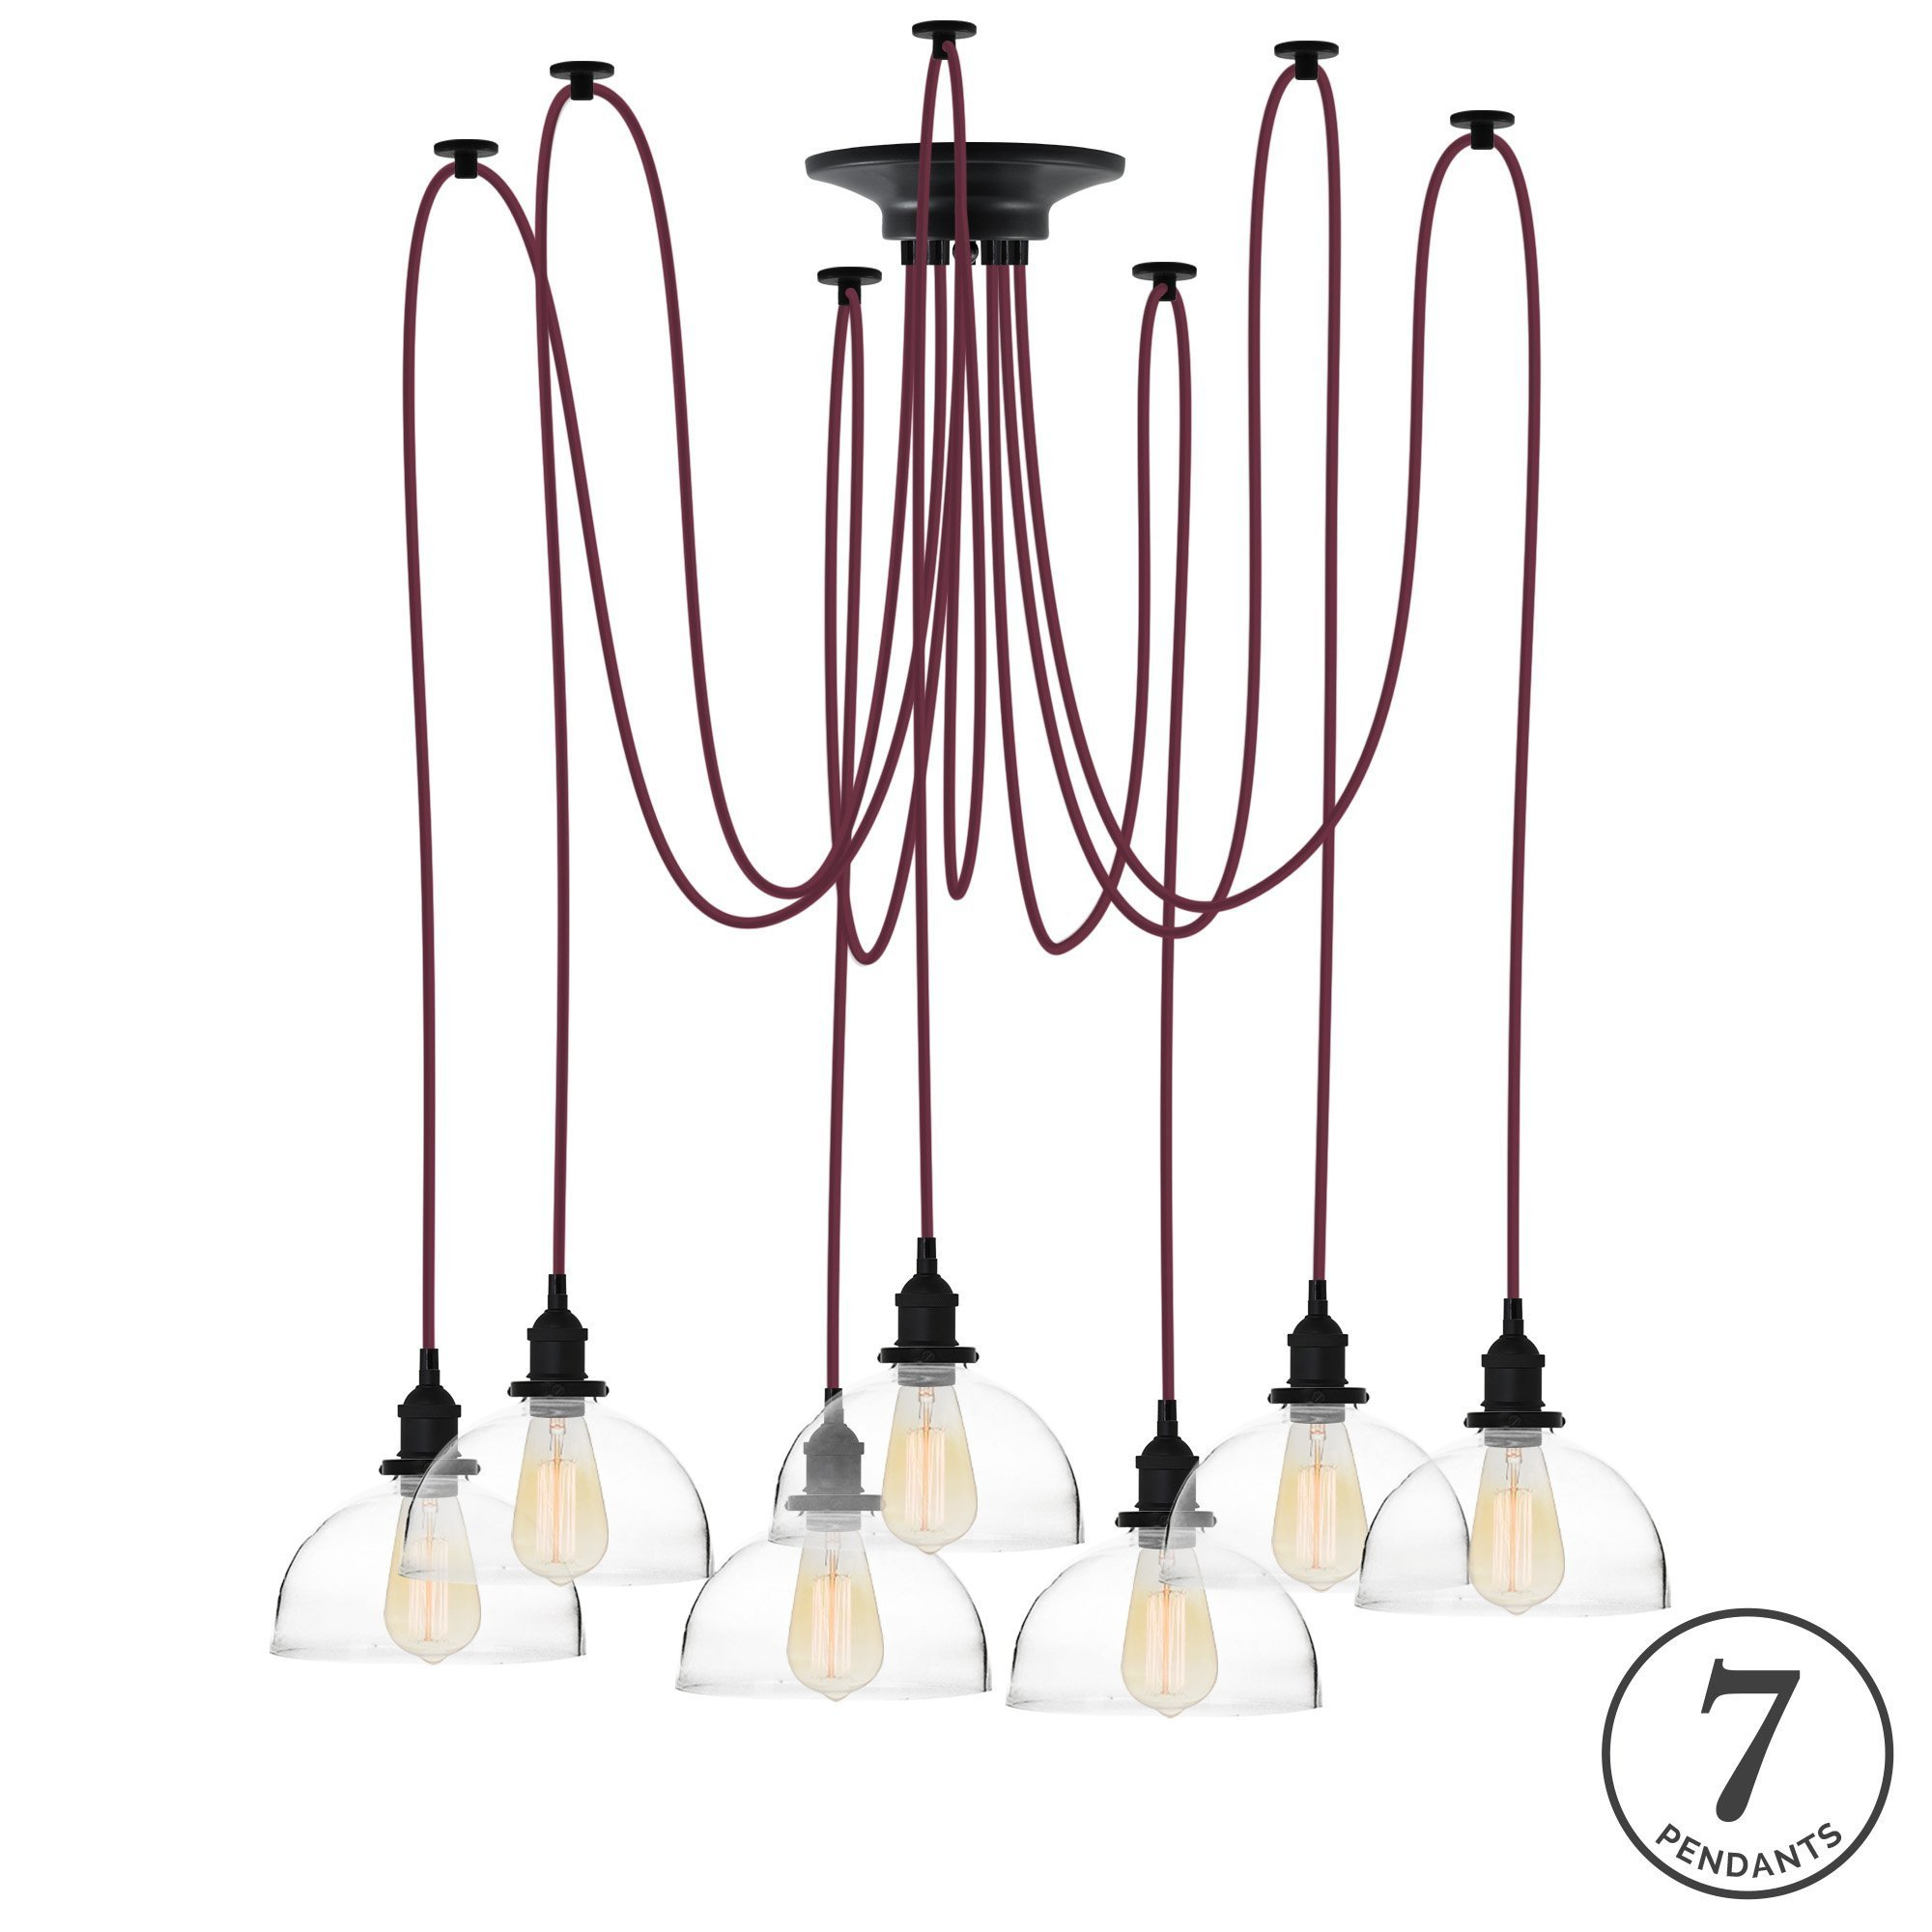 Ian 7 Light Cluster Pendant With Regard To Gattilier 3 Light Cluster Pendants (View 4 of 30)